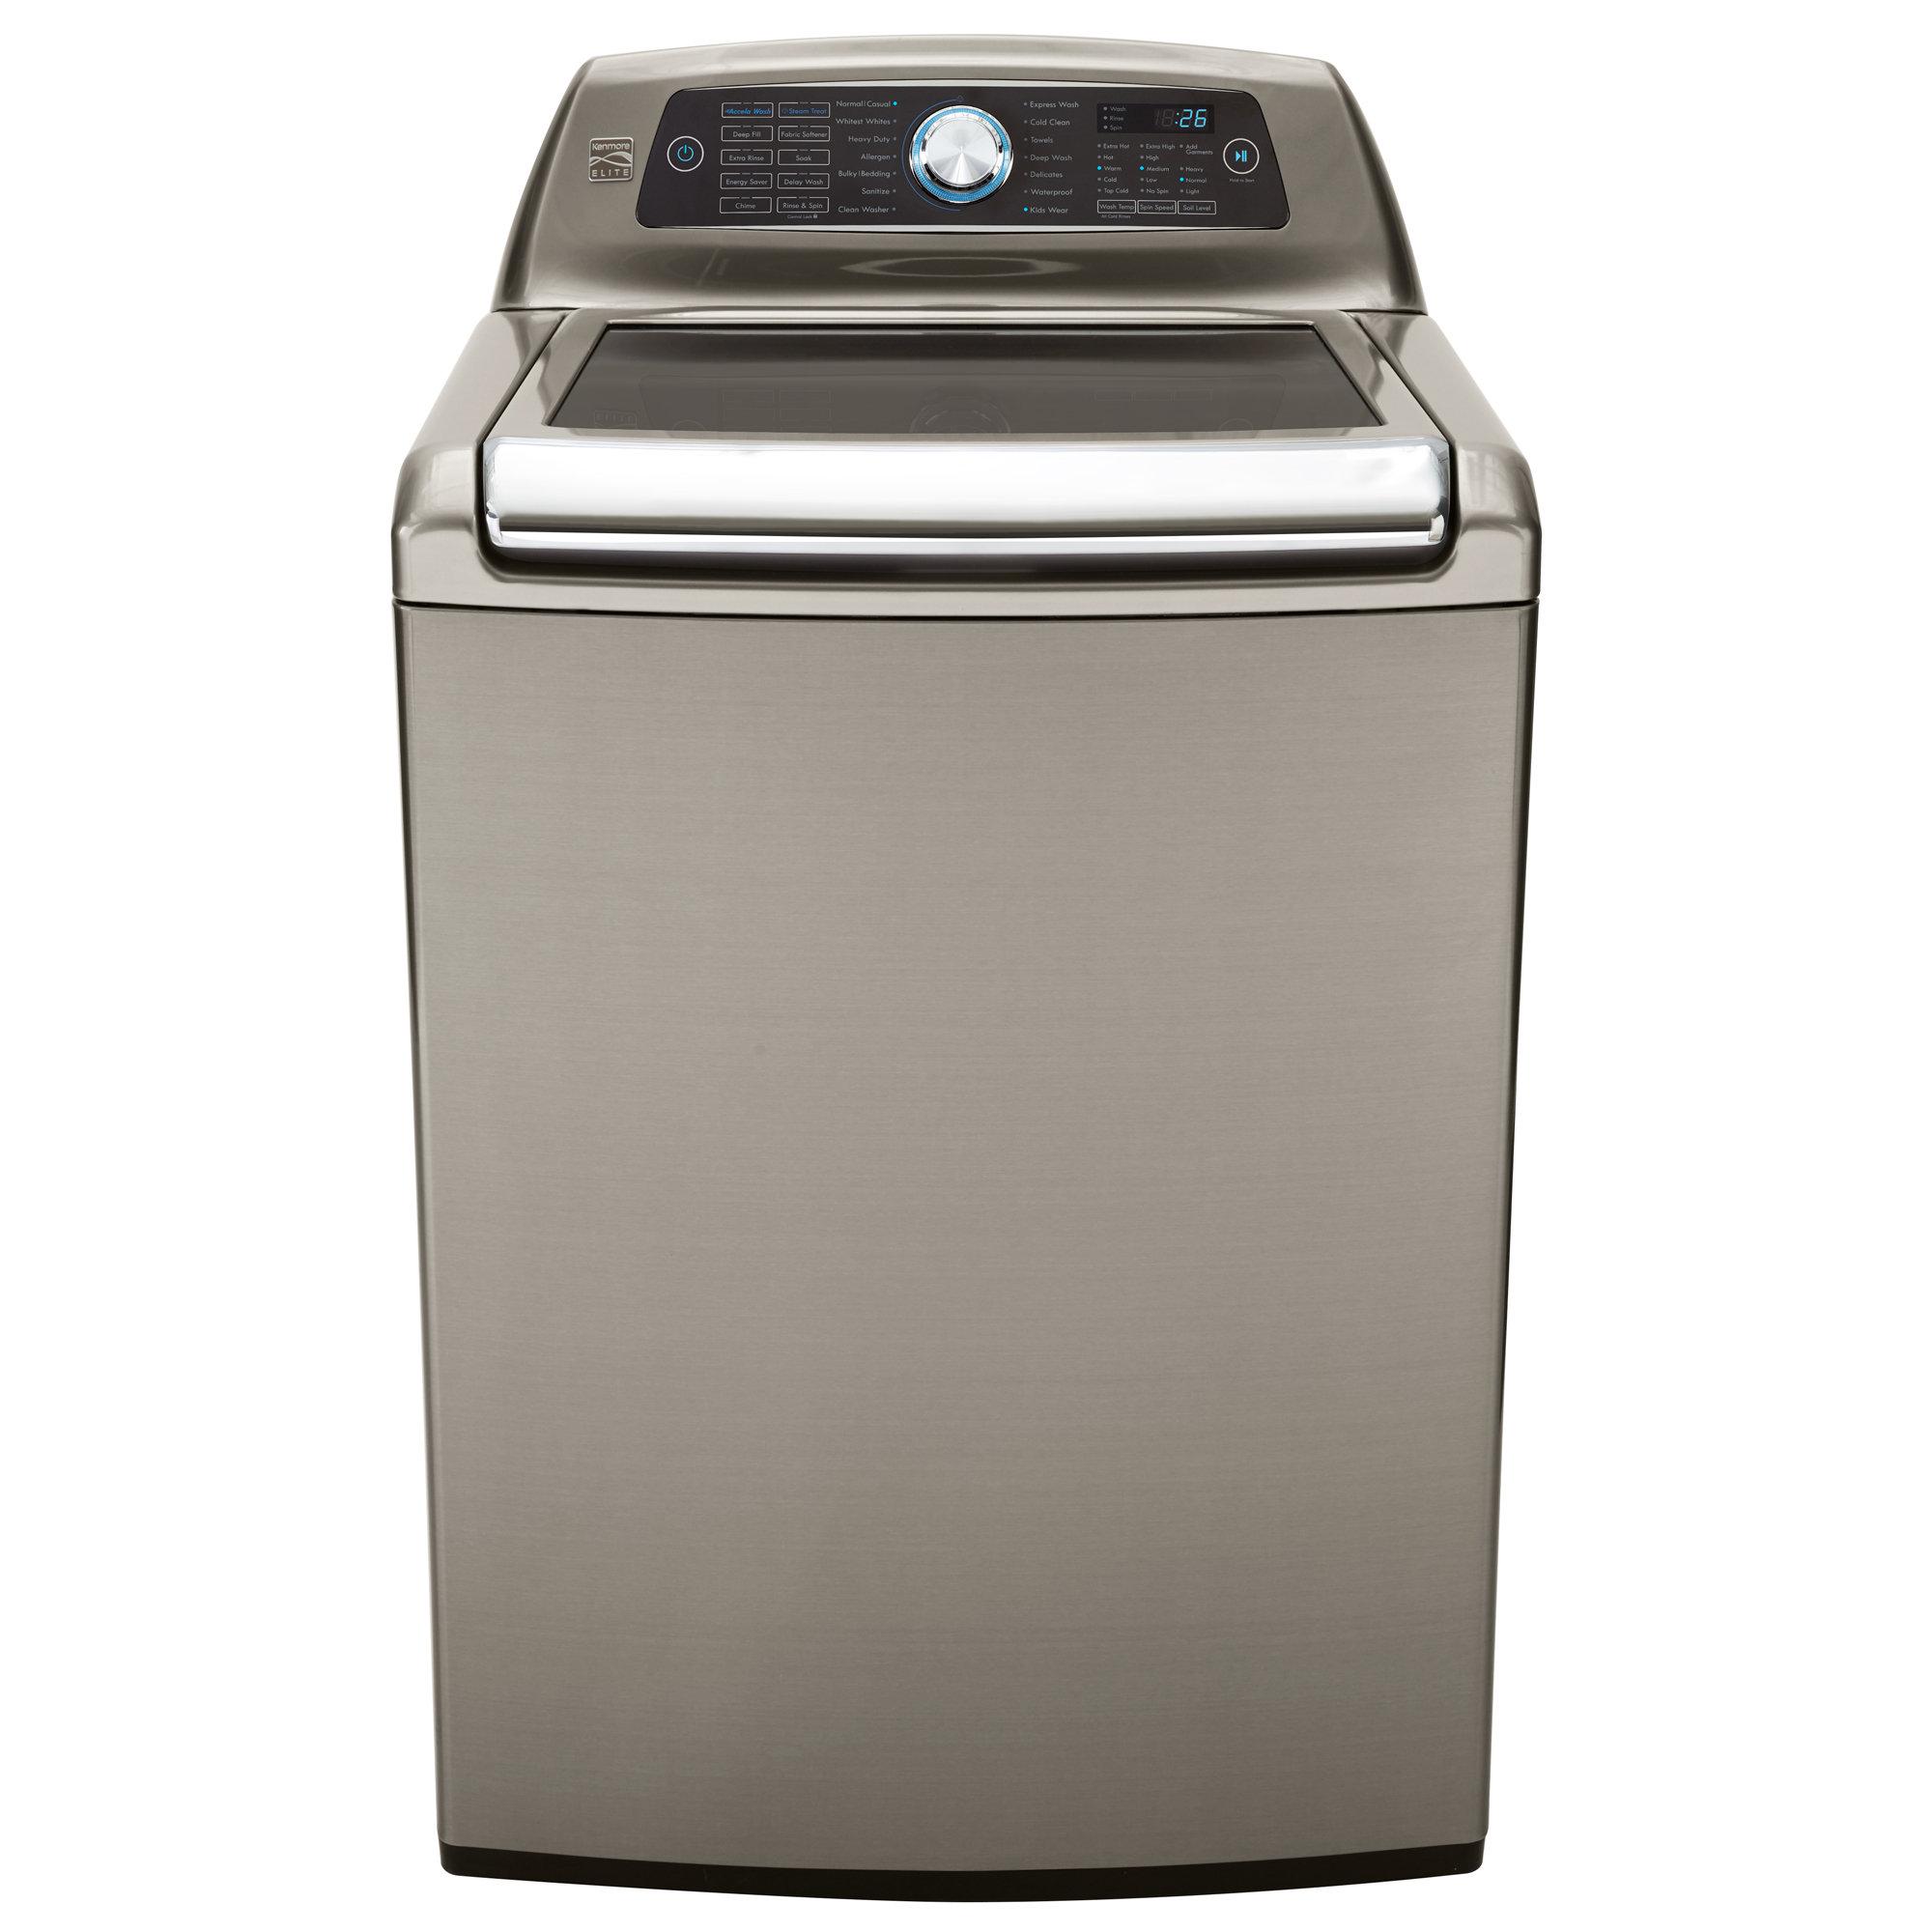 hight resolution of kenmore elite 31553 5 2 cu ft top load washer w accela wash gas dryer i d be happy for any sears gas dryer diagram just to